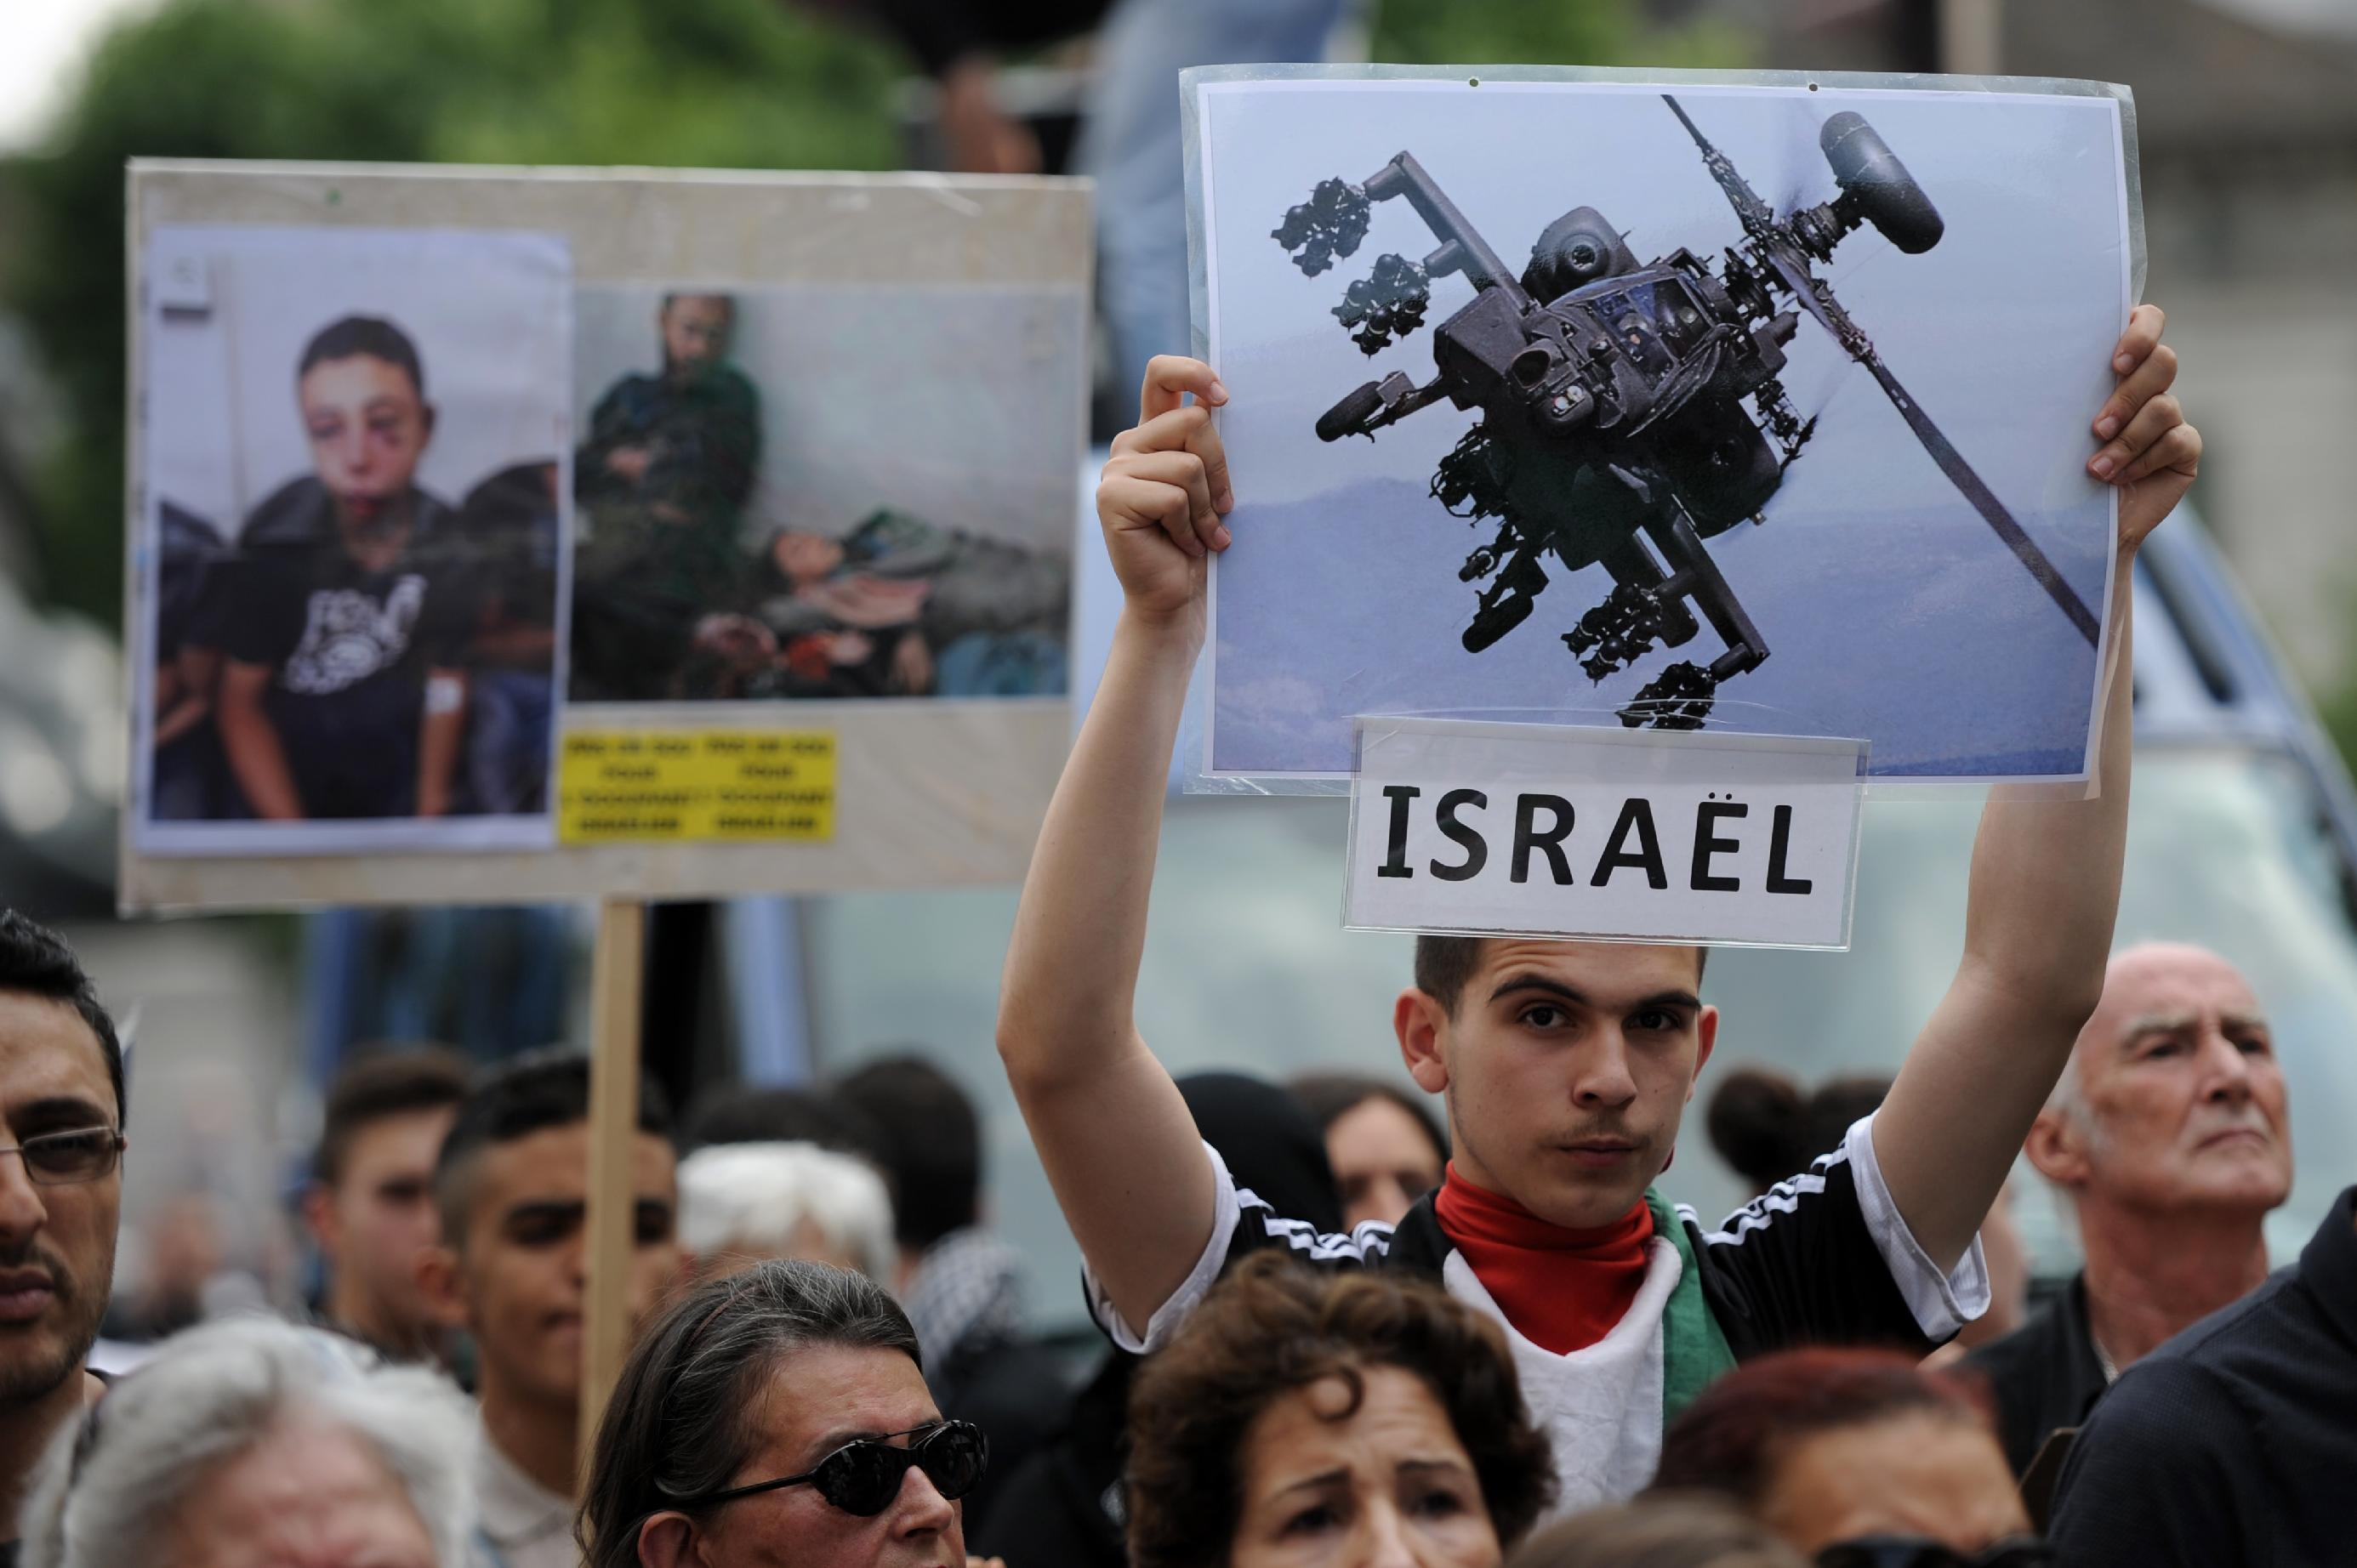 Protestors hold pictures of victims and a plane during a a demonstration on July 23, 2014 in Paris (AFP Photo/Stephane De Sakutin)